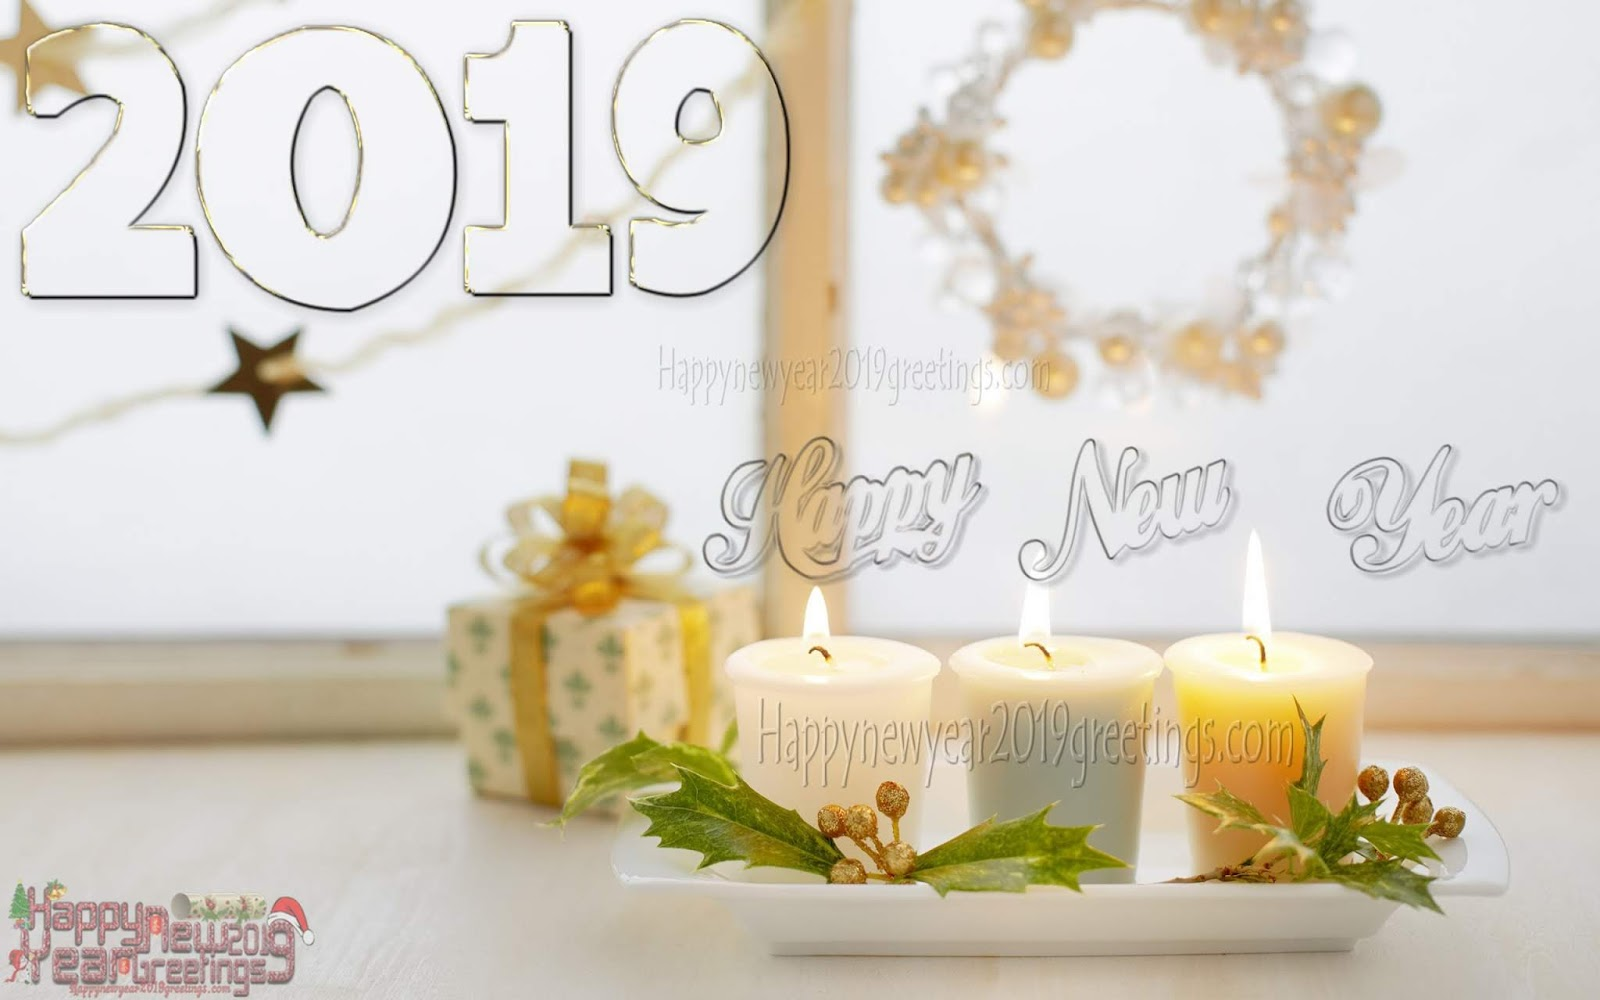 happy newyear 2019 candle wallpapers download